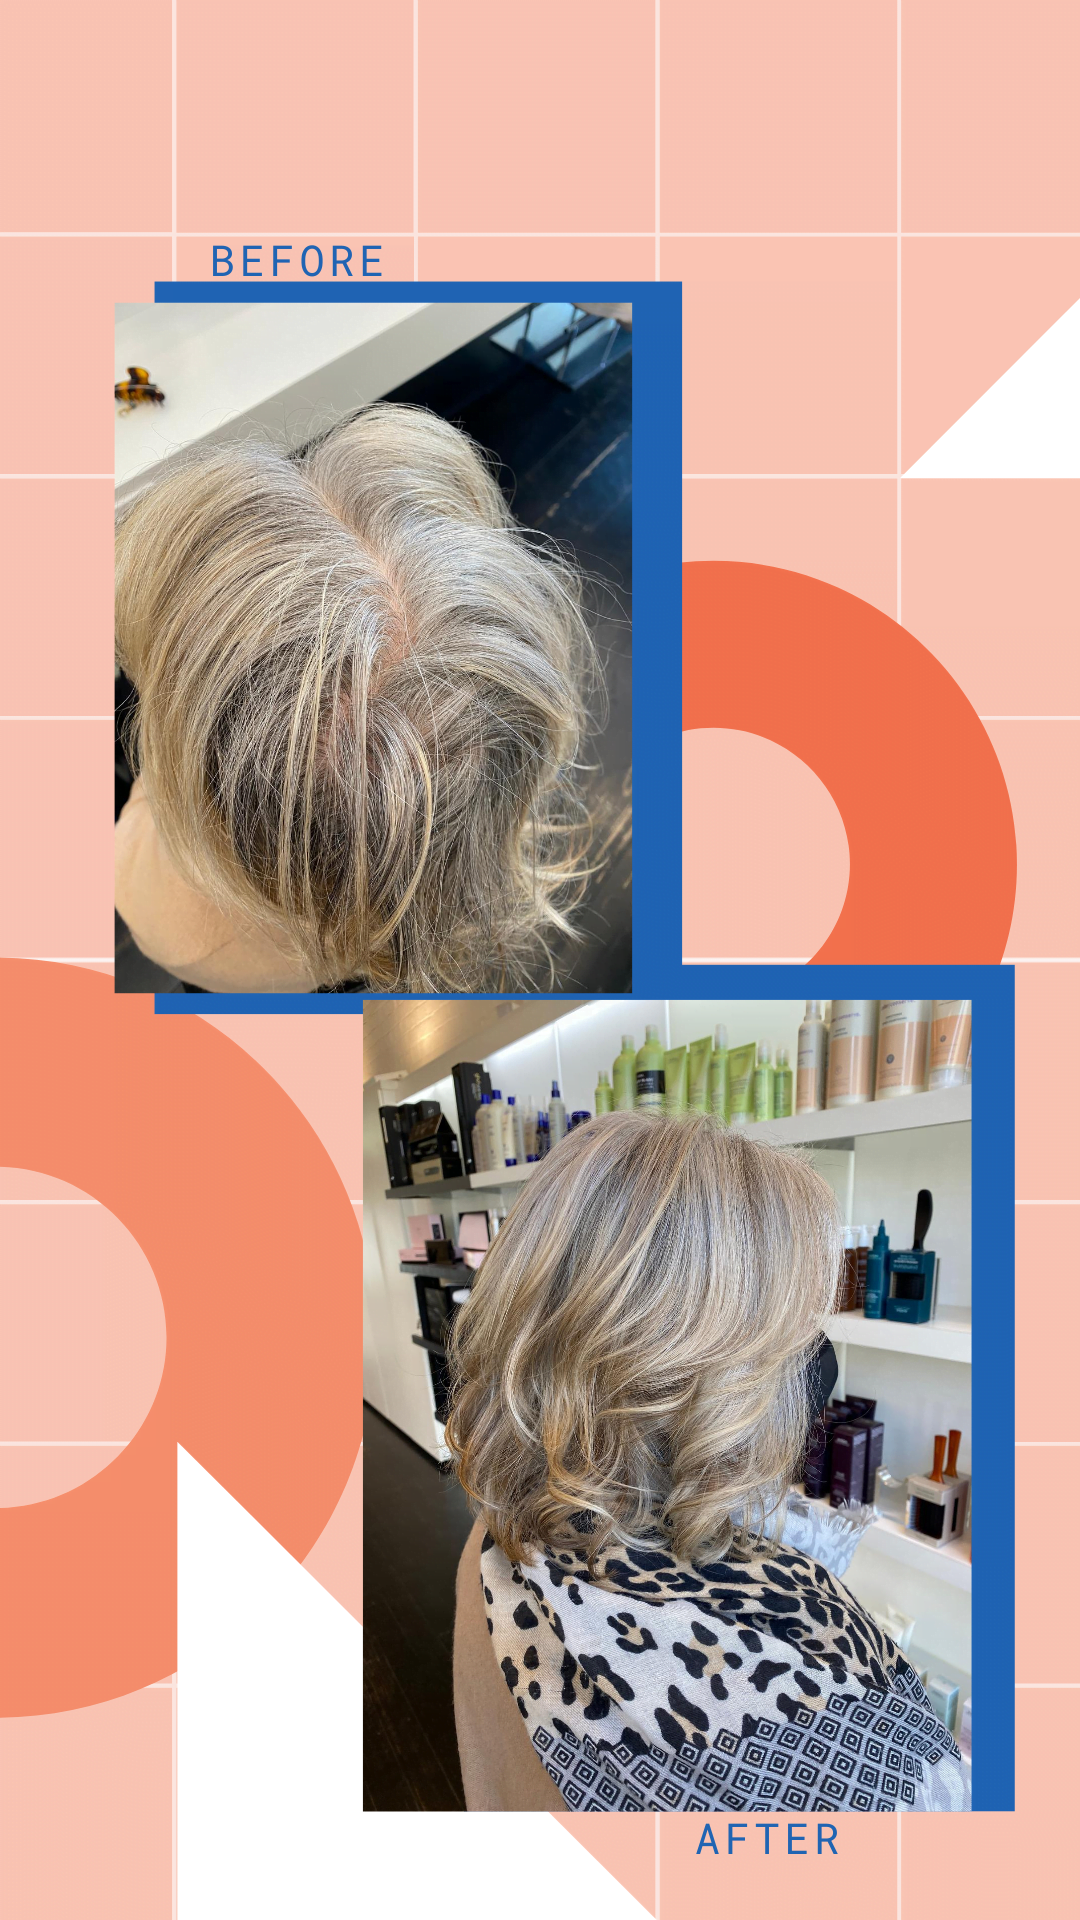 embrace your natural grey hair and enhance it with highlights and lowlights for texture and dimension